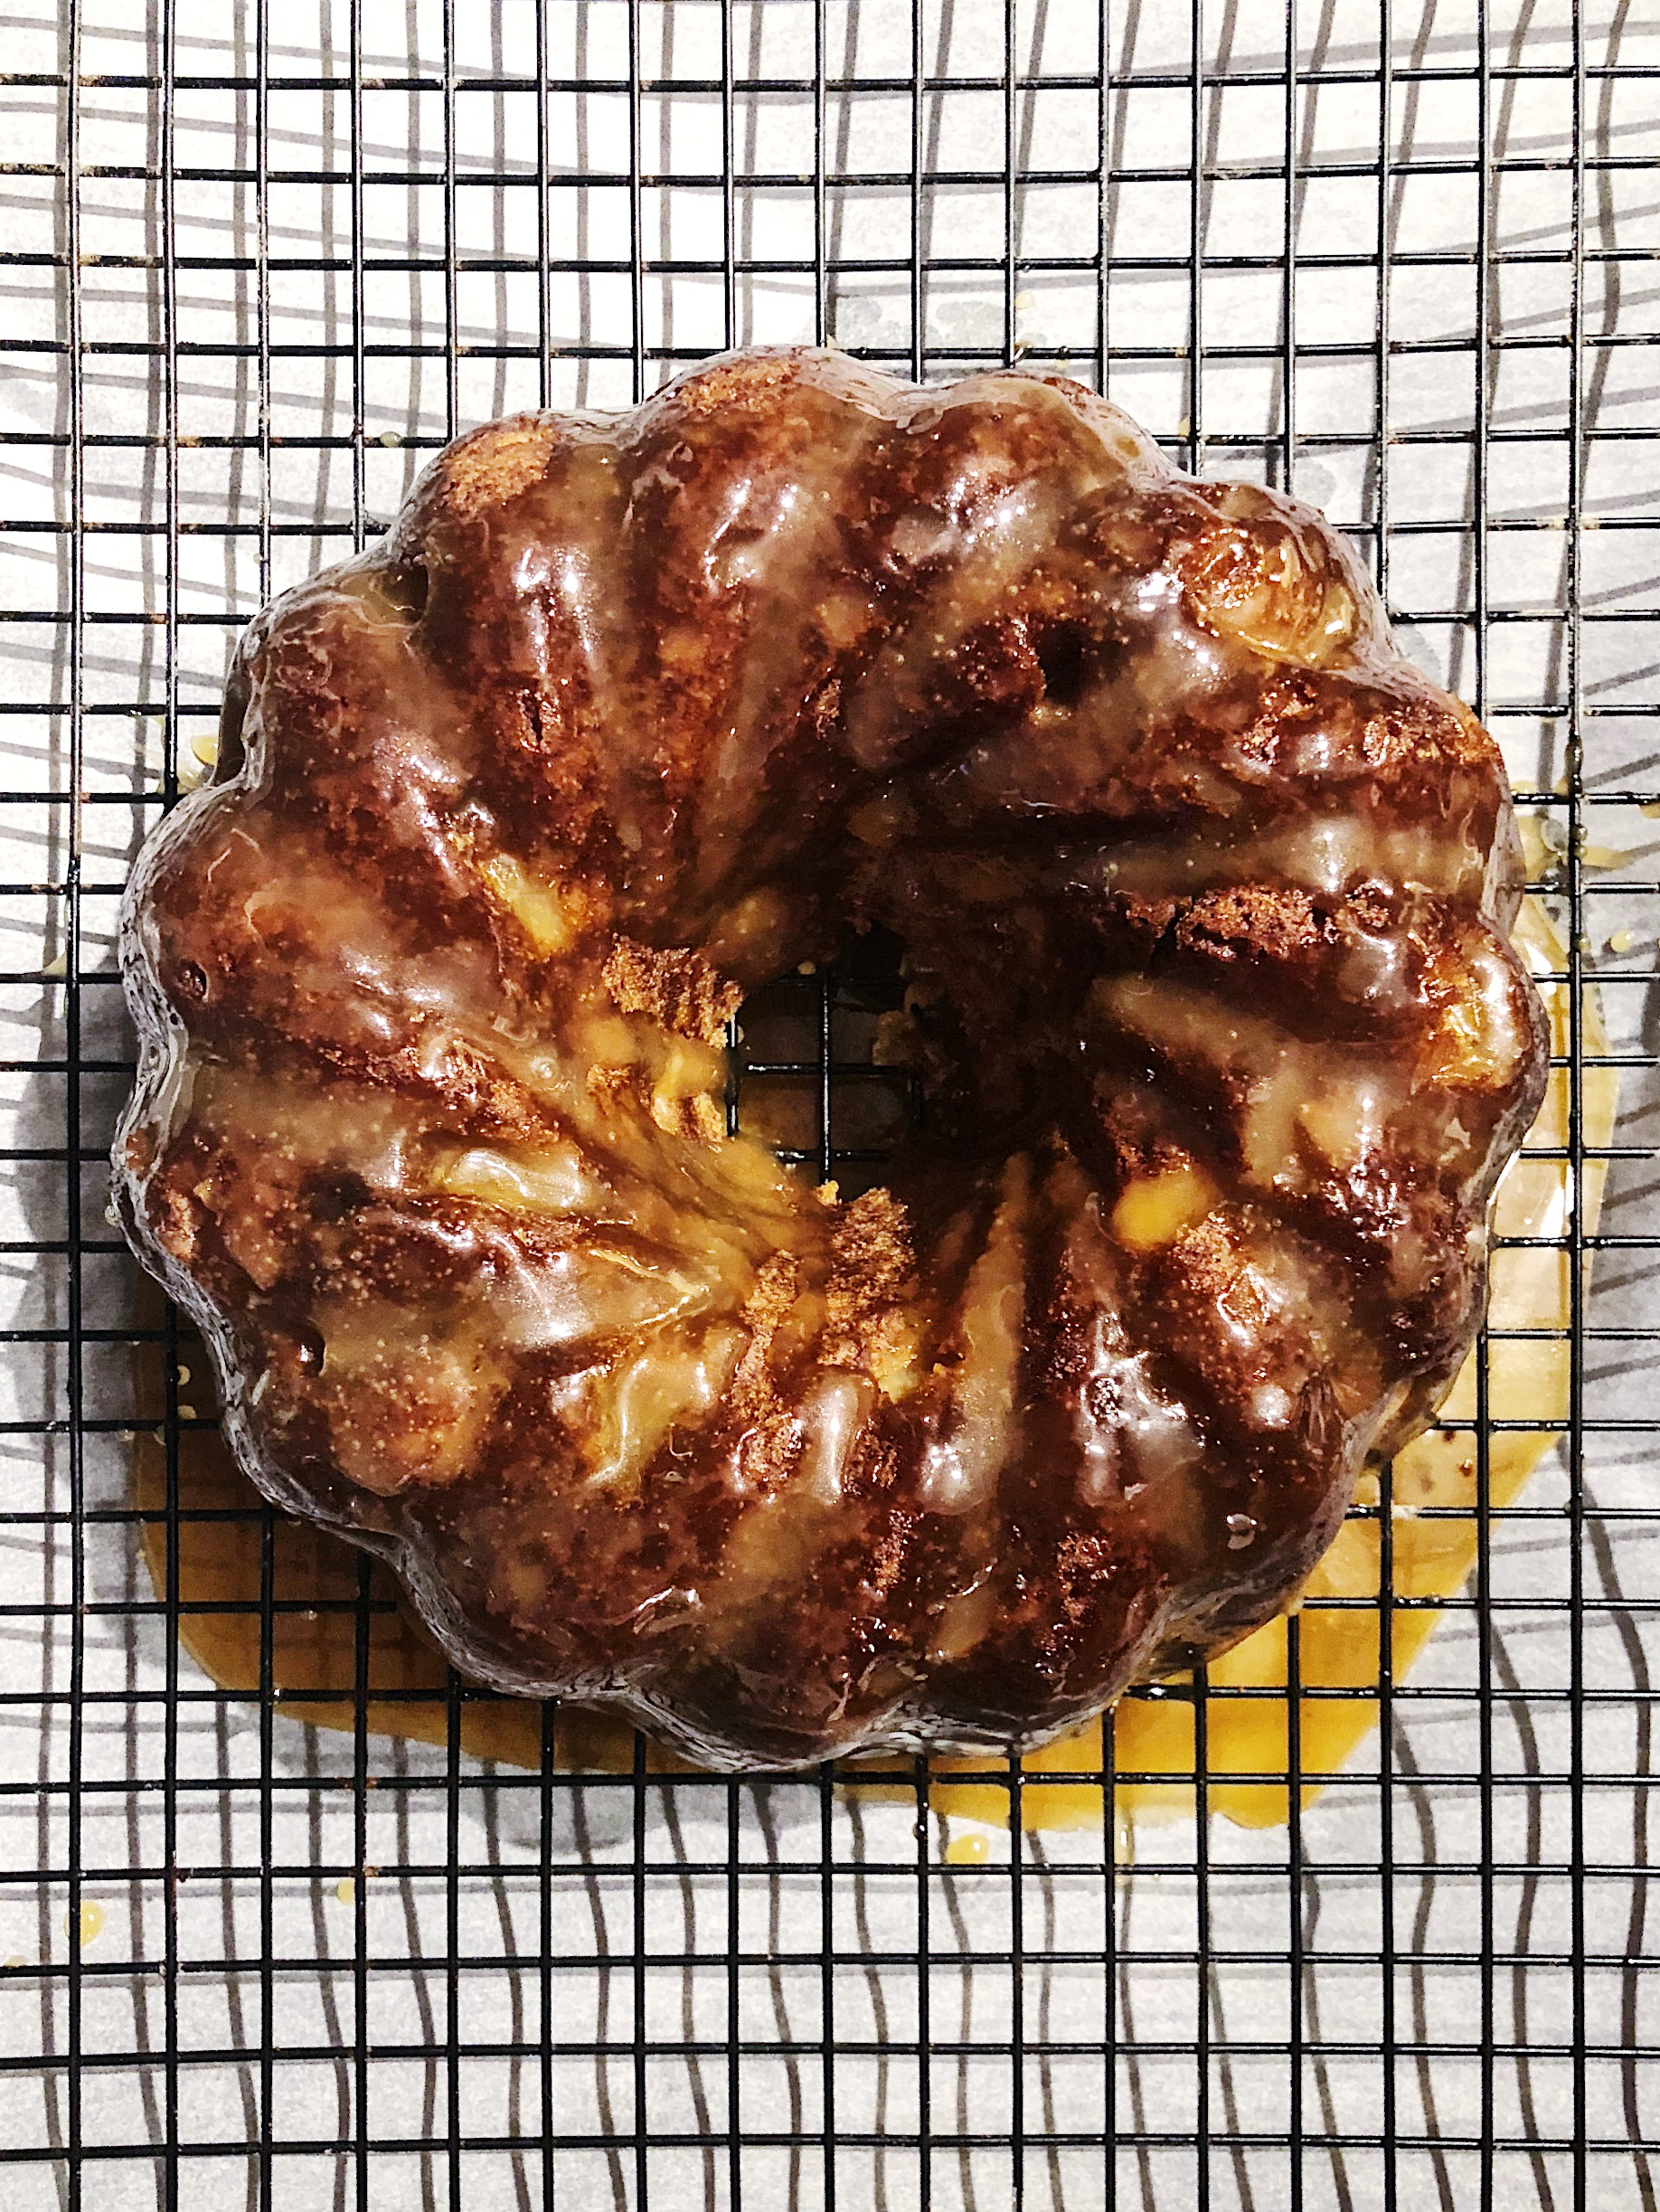 This Honey Caramel Apple Cake gets made in a bundt pan to celebrate the cyclic nature of the year.